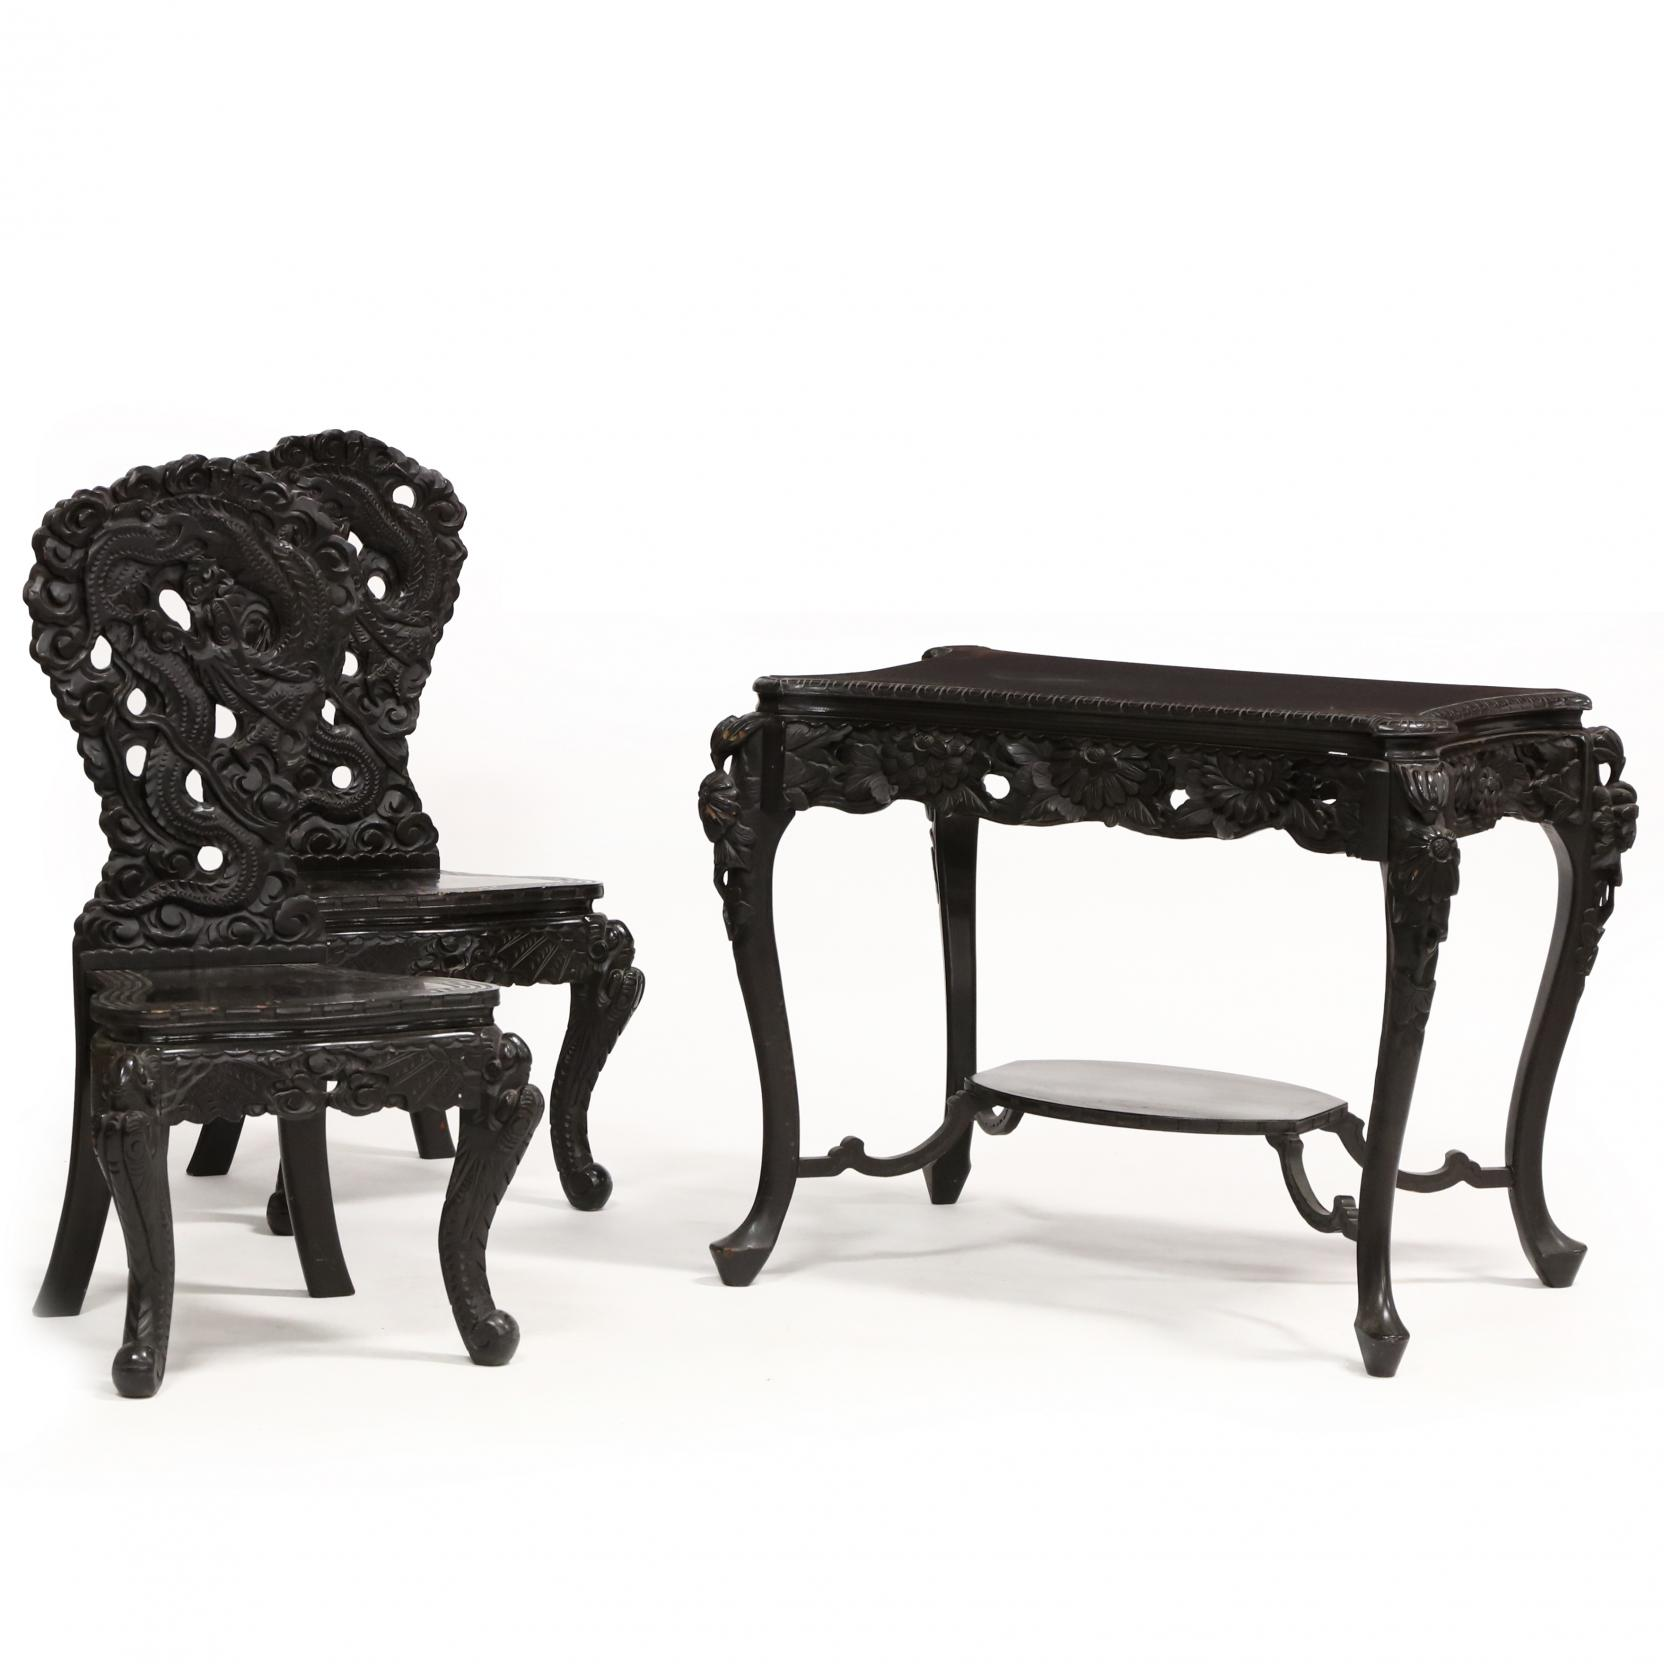 a-set-of-japanese-carved-wooden-dragon-table-and-chairs